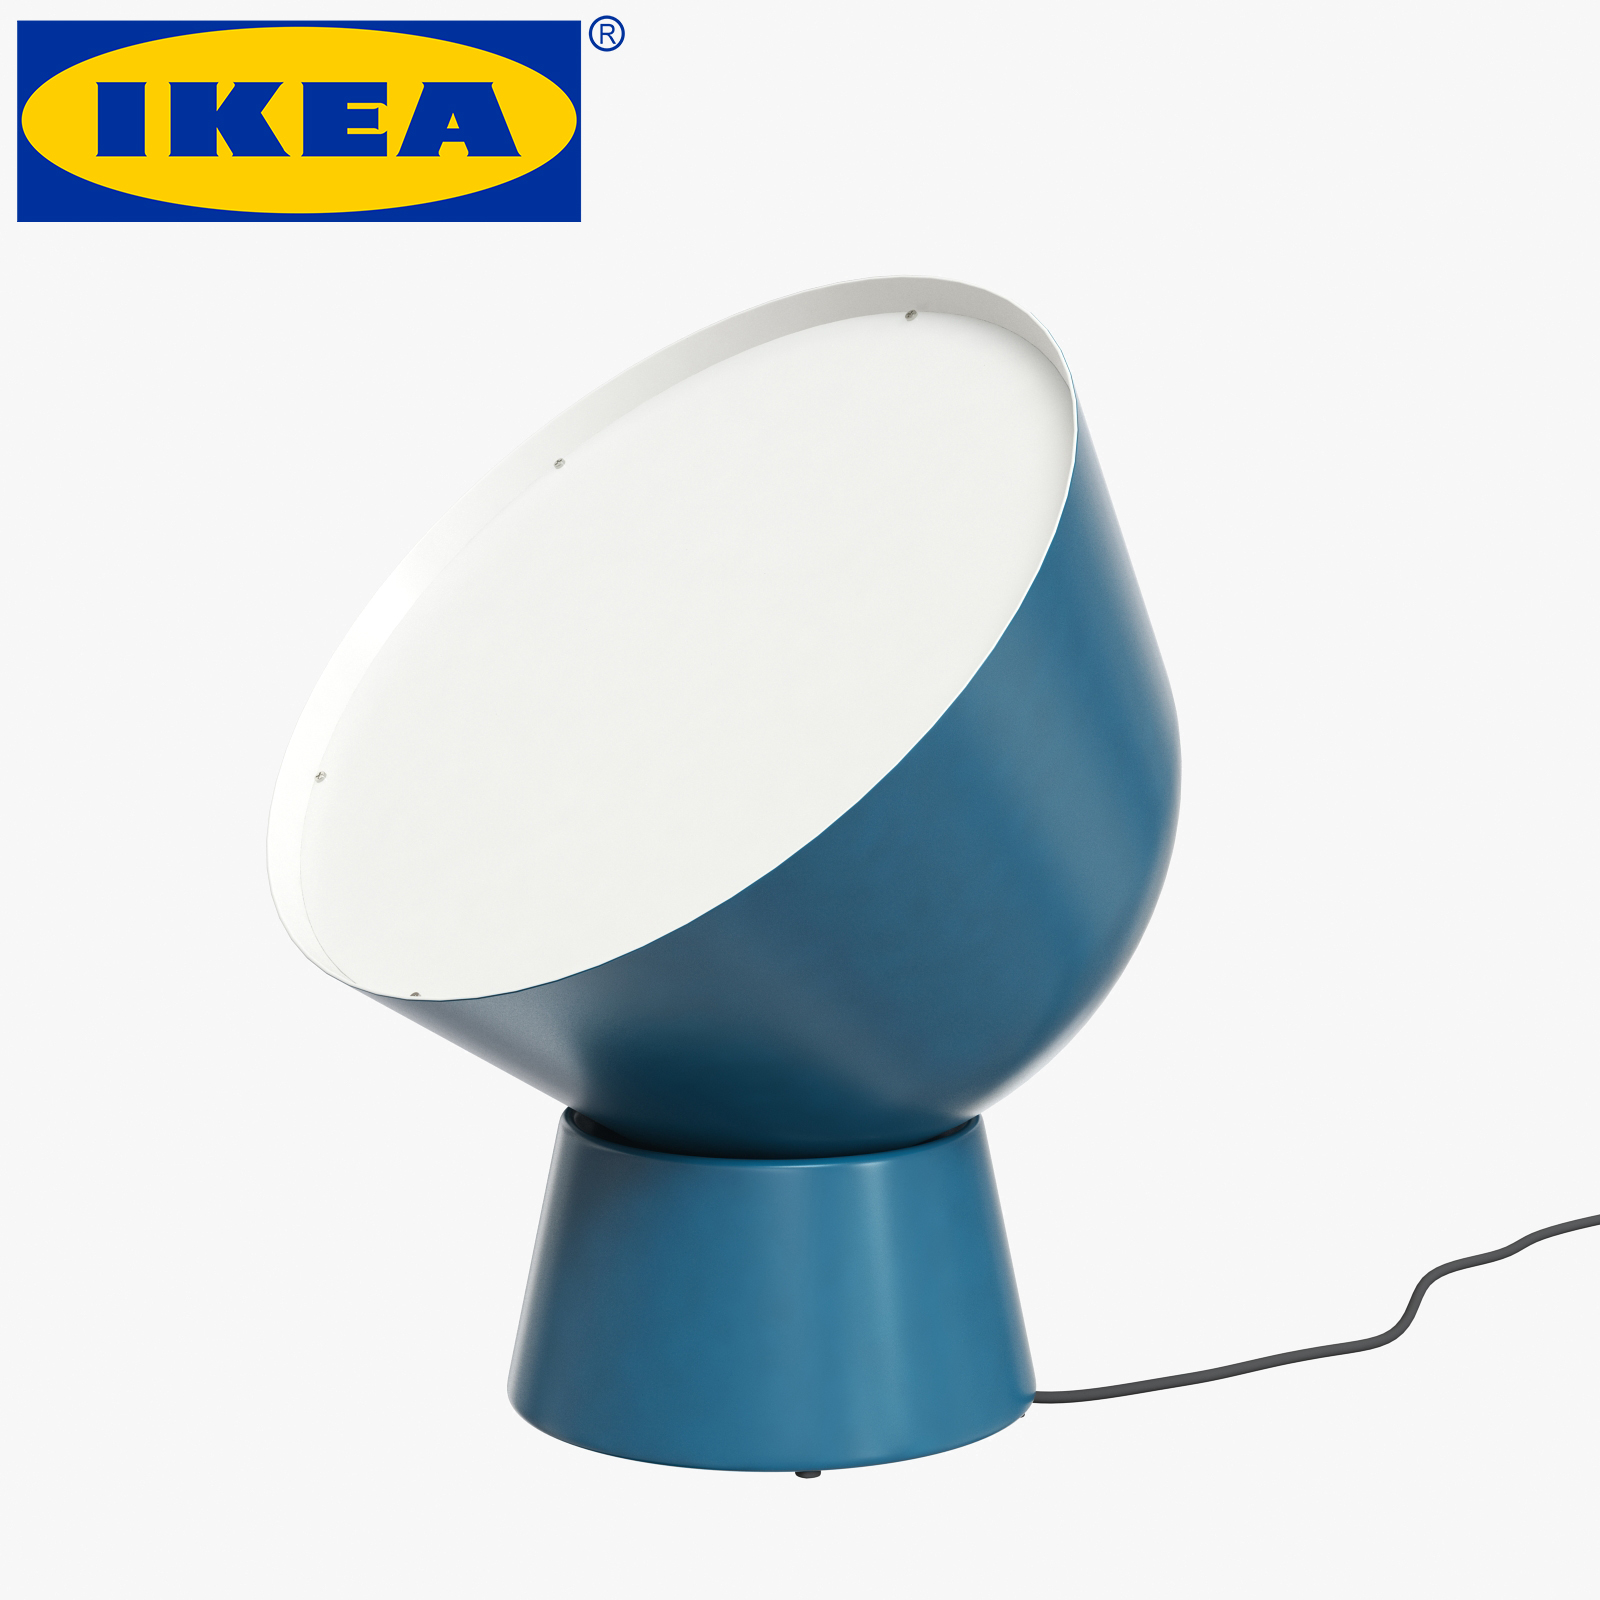 Ikea Ps 2017 Floor Lamp Dark Blue